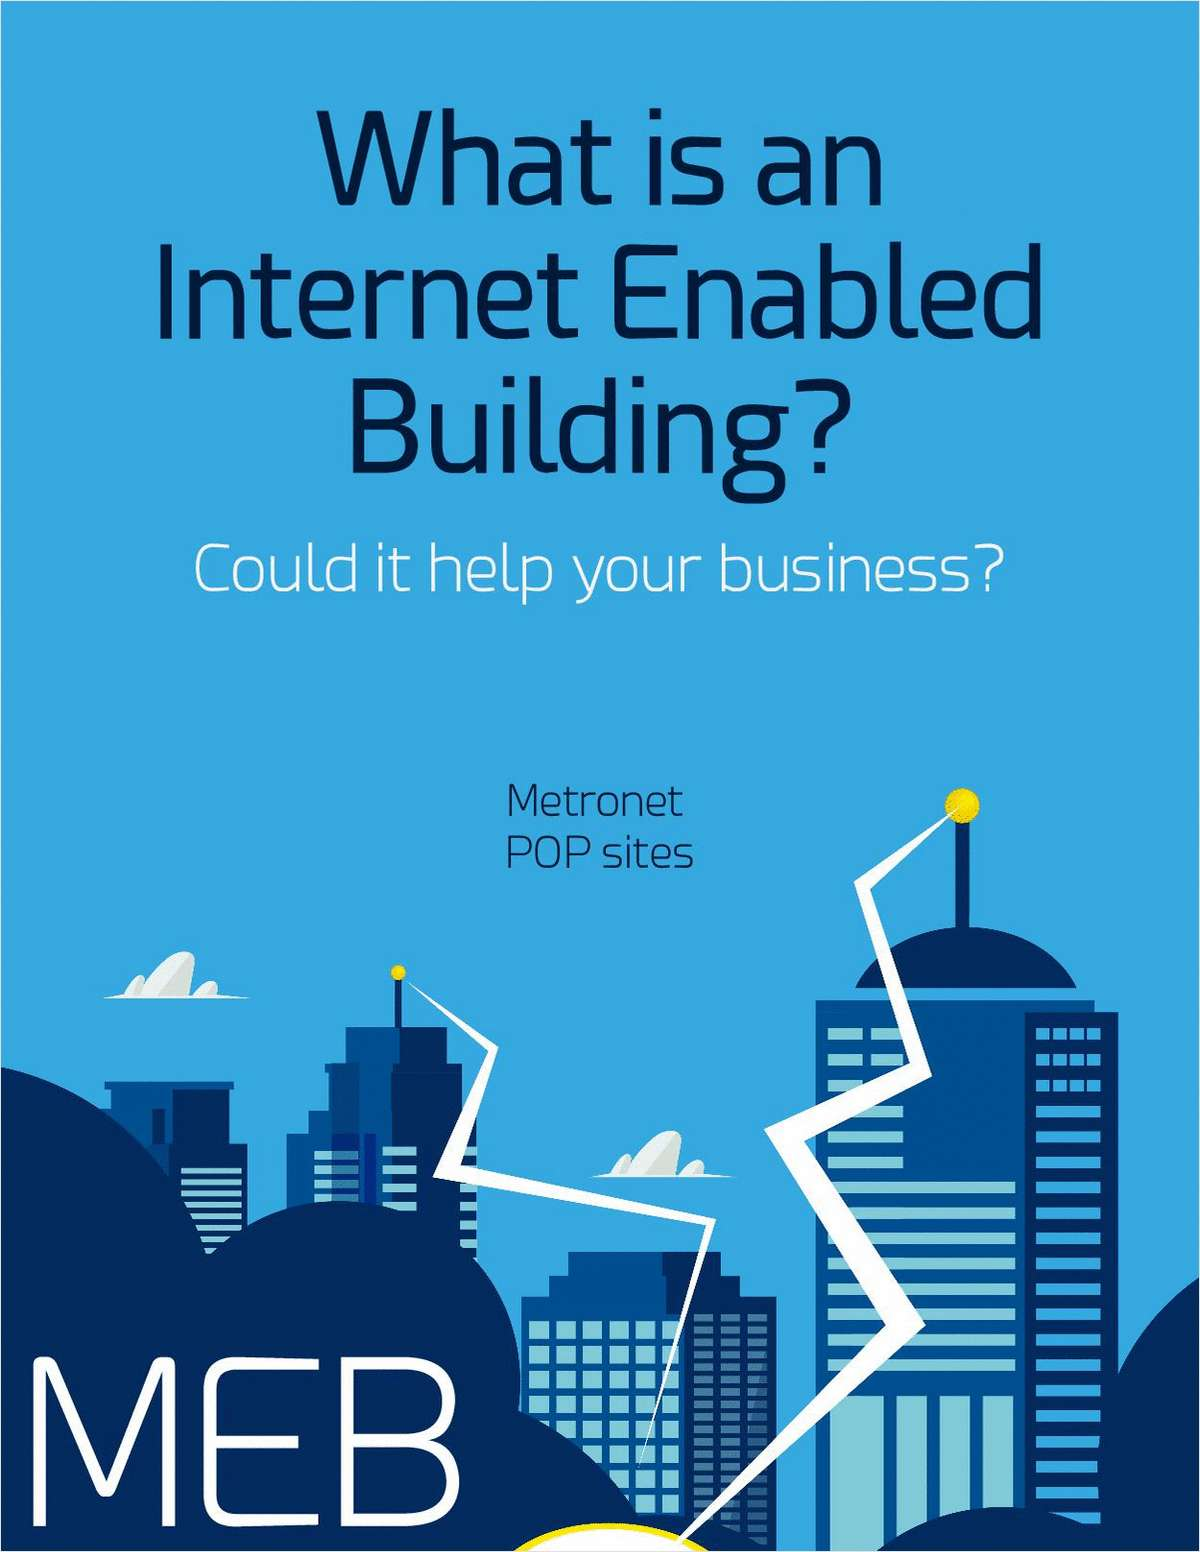 What is an Internet Enabled Building?